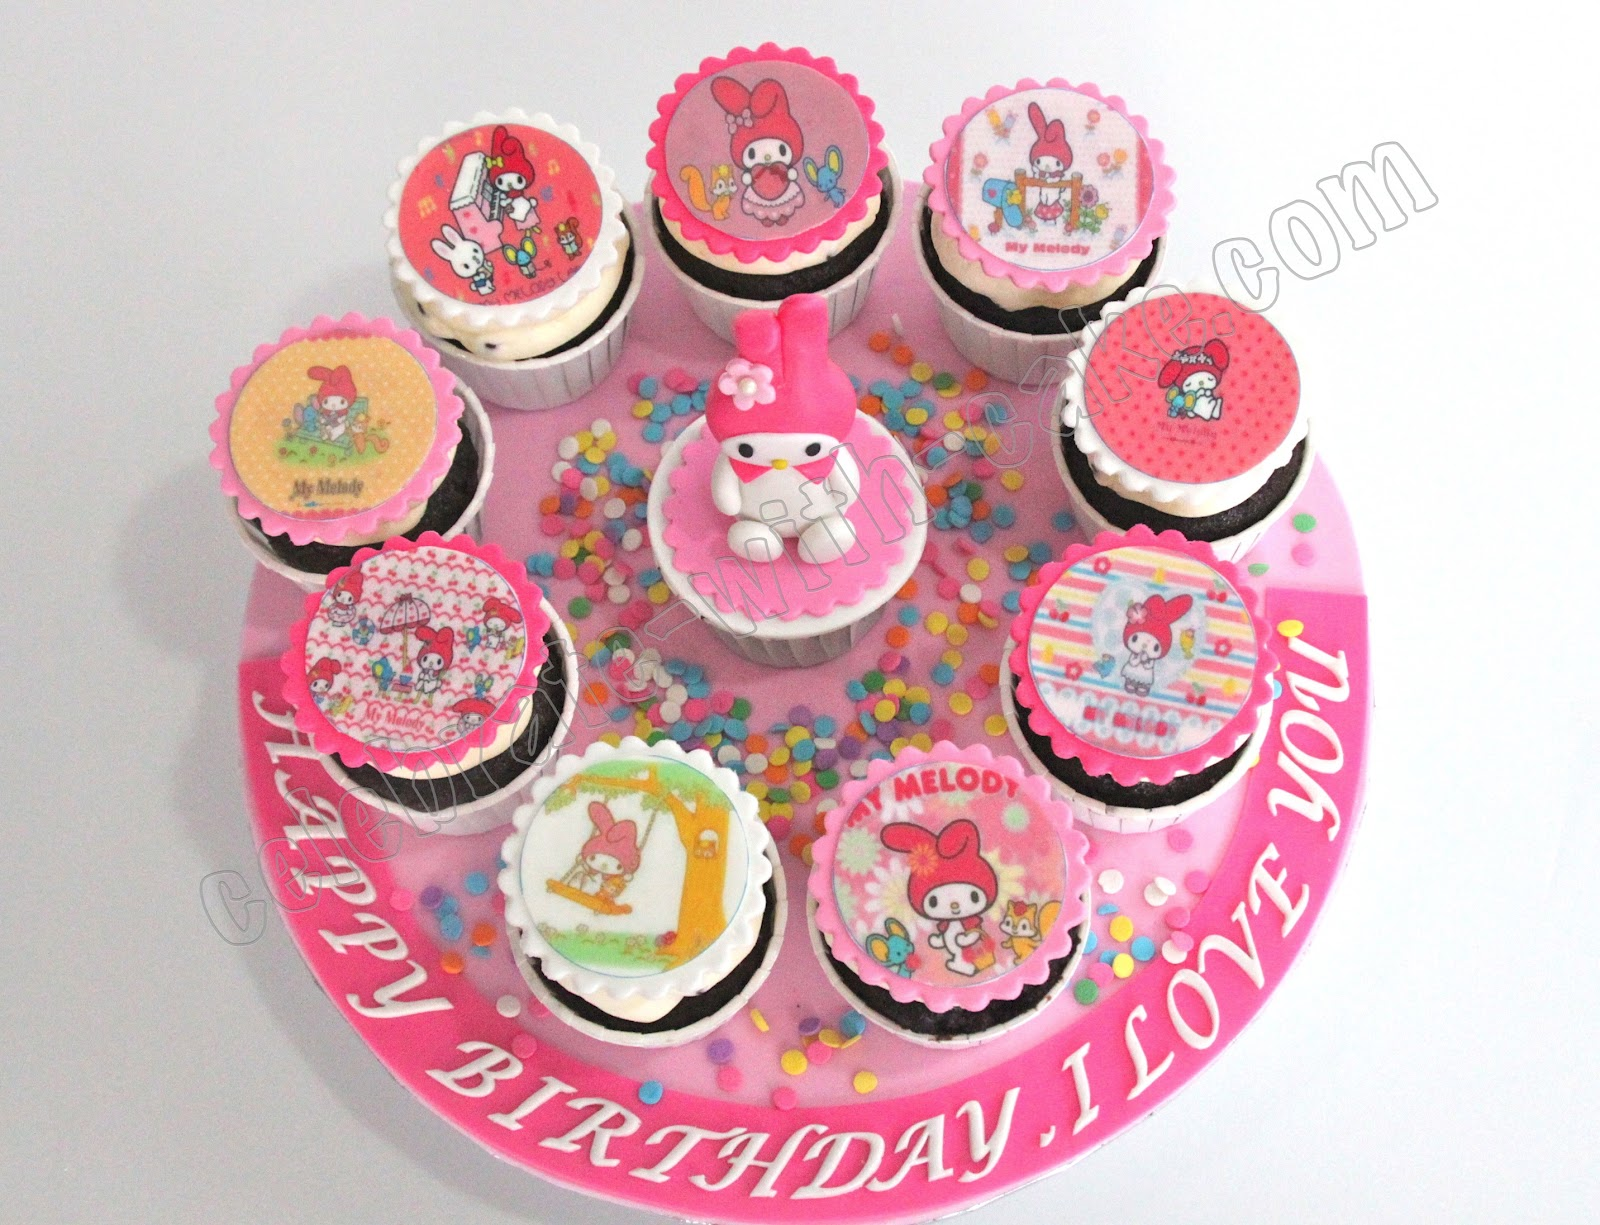 My melody, Birthday cakes and Cakes on Pinterest